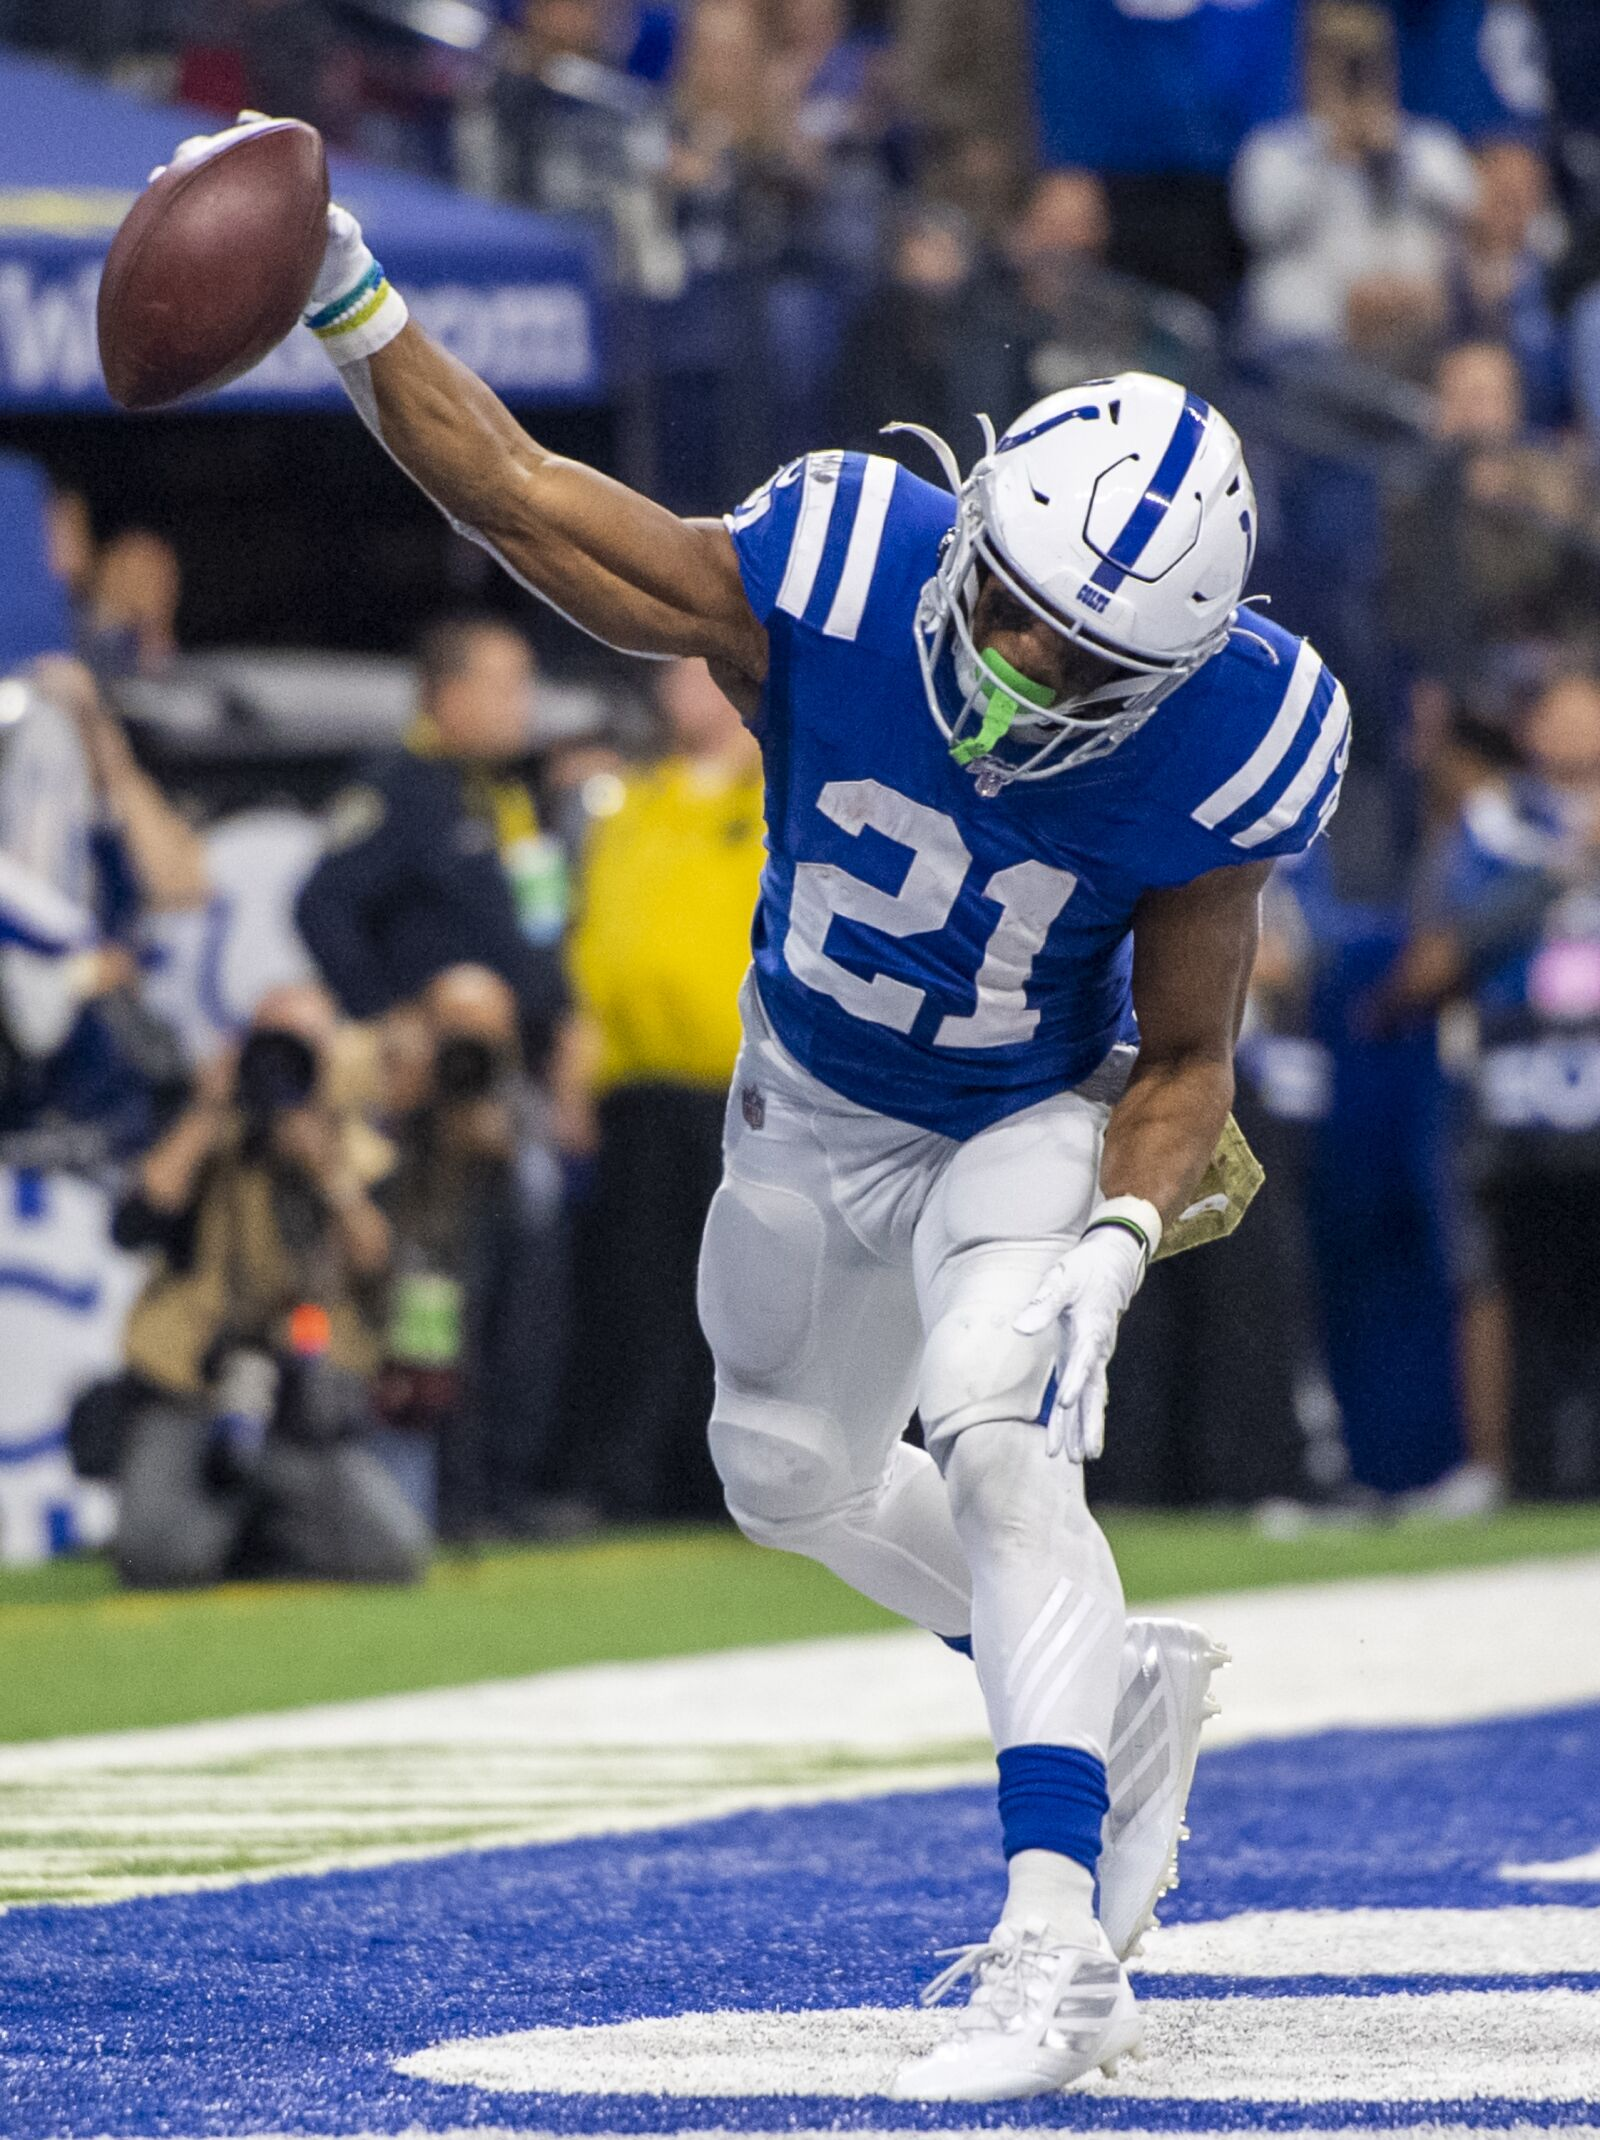 Colts destroy Jags, get their groove back